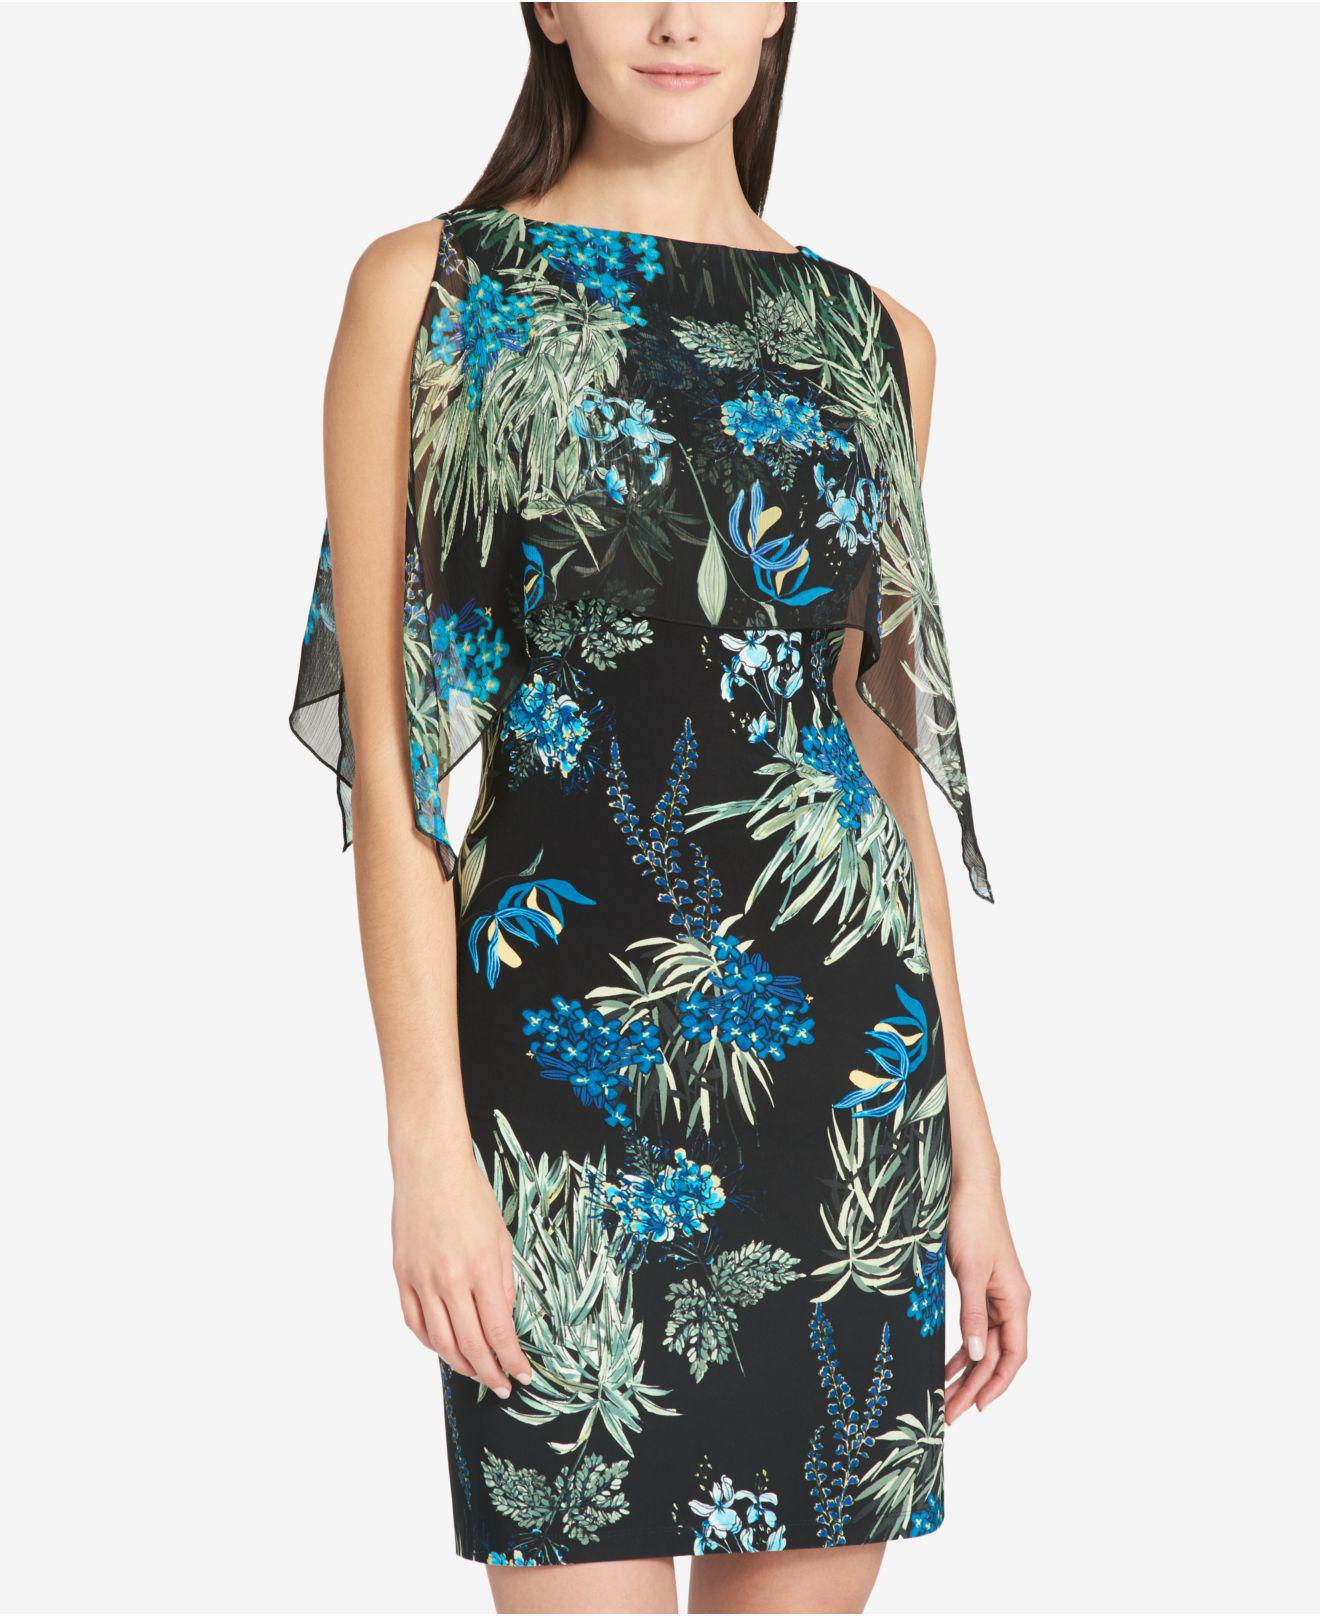 51699a8d630 Tommy Hilfiger Floral-printed Chiffon-overlay Dress in Black - Lyst